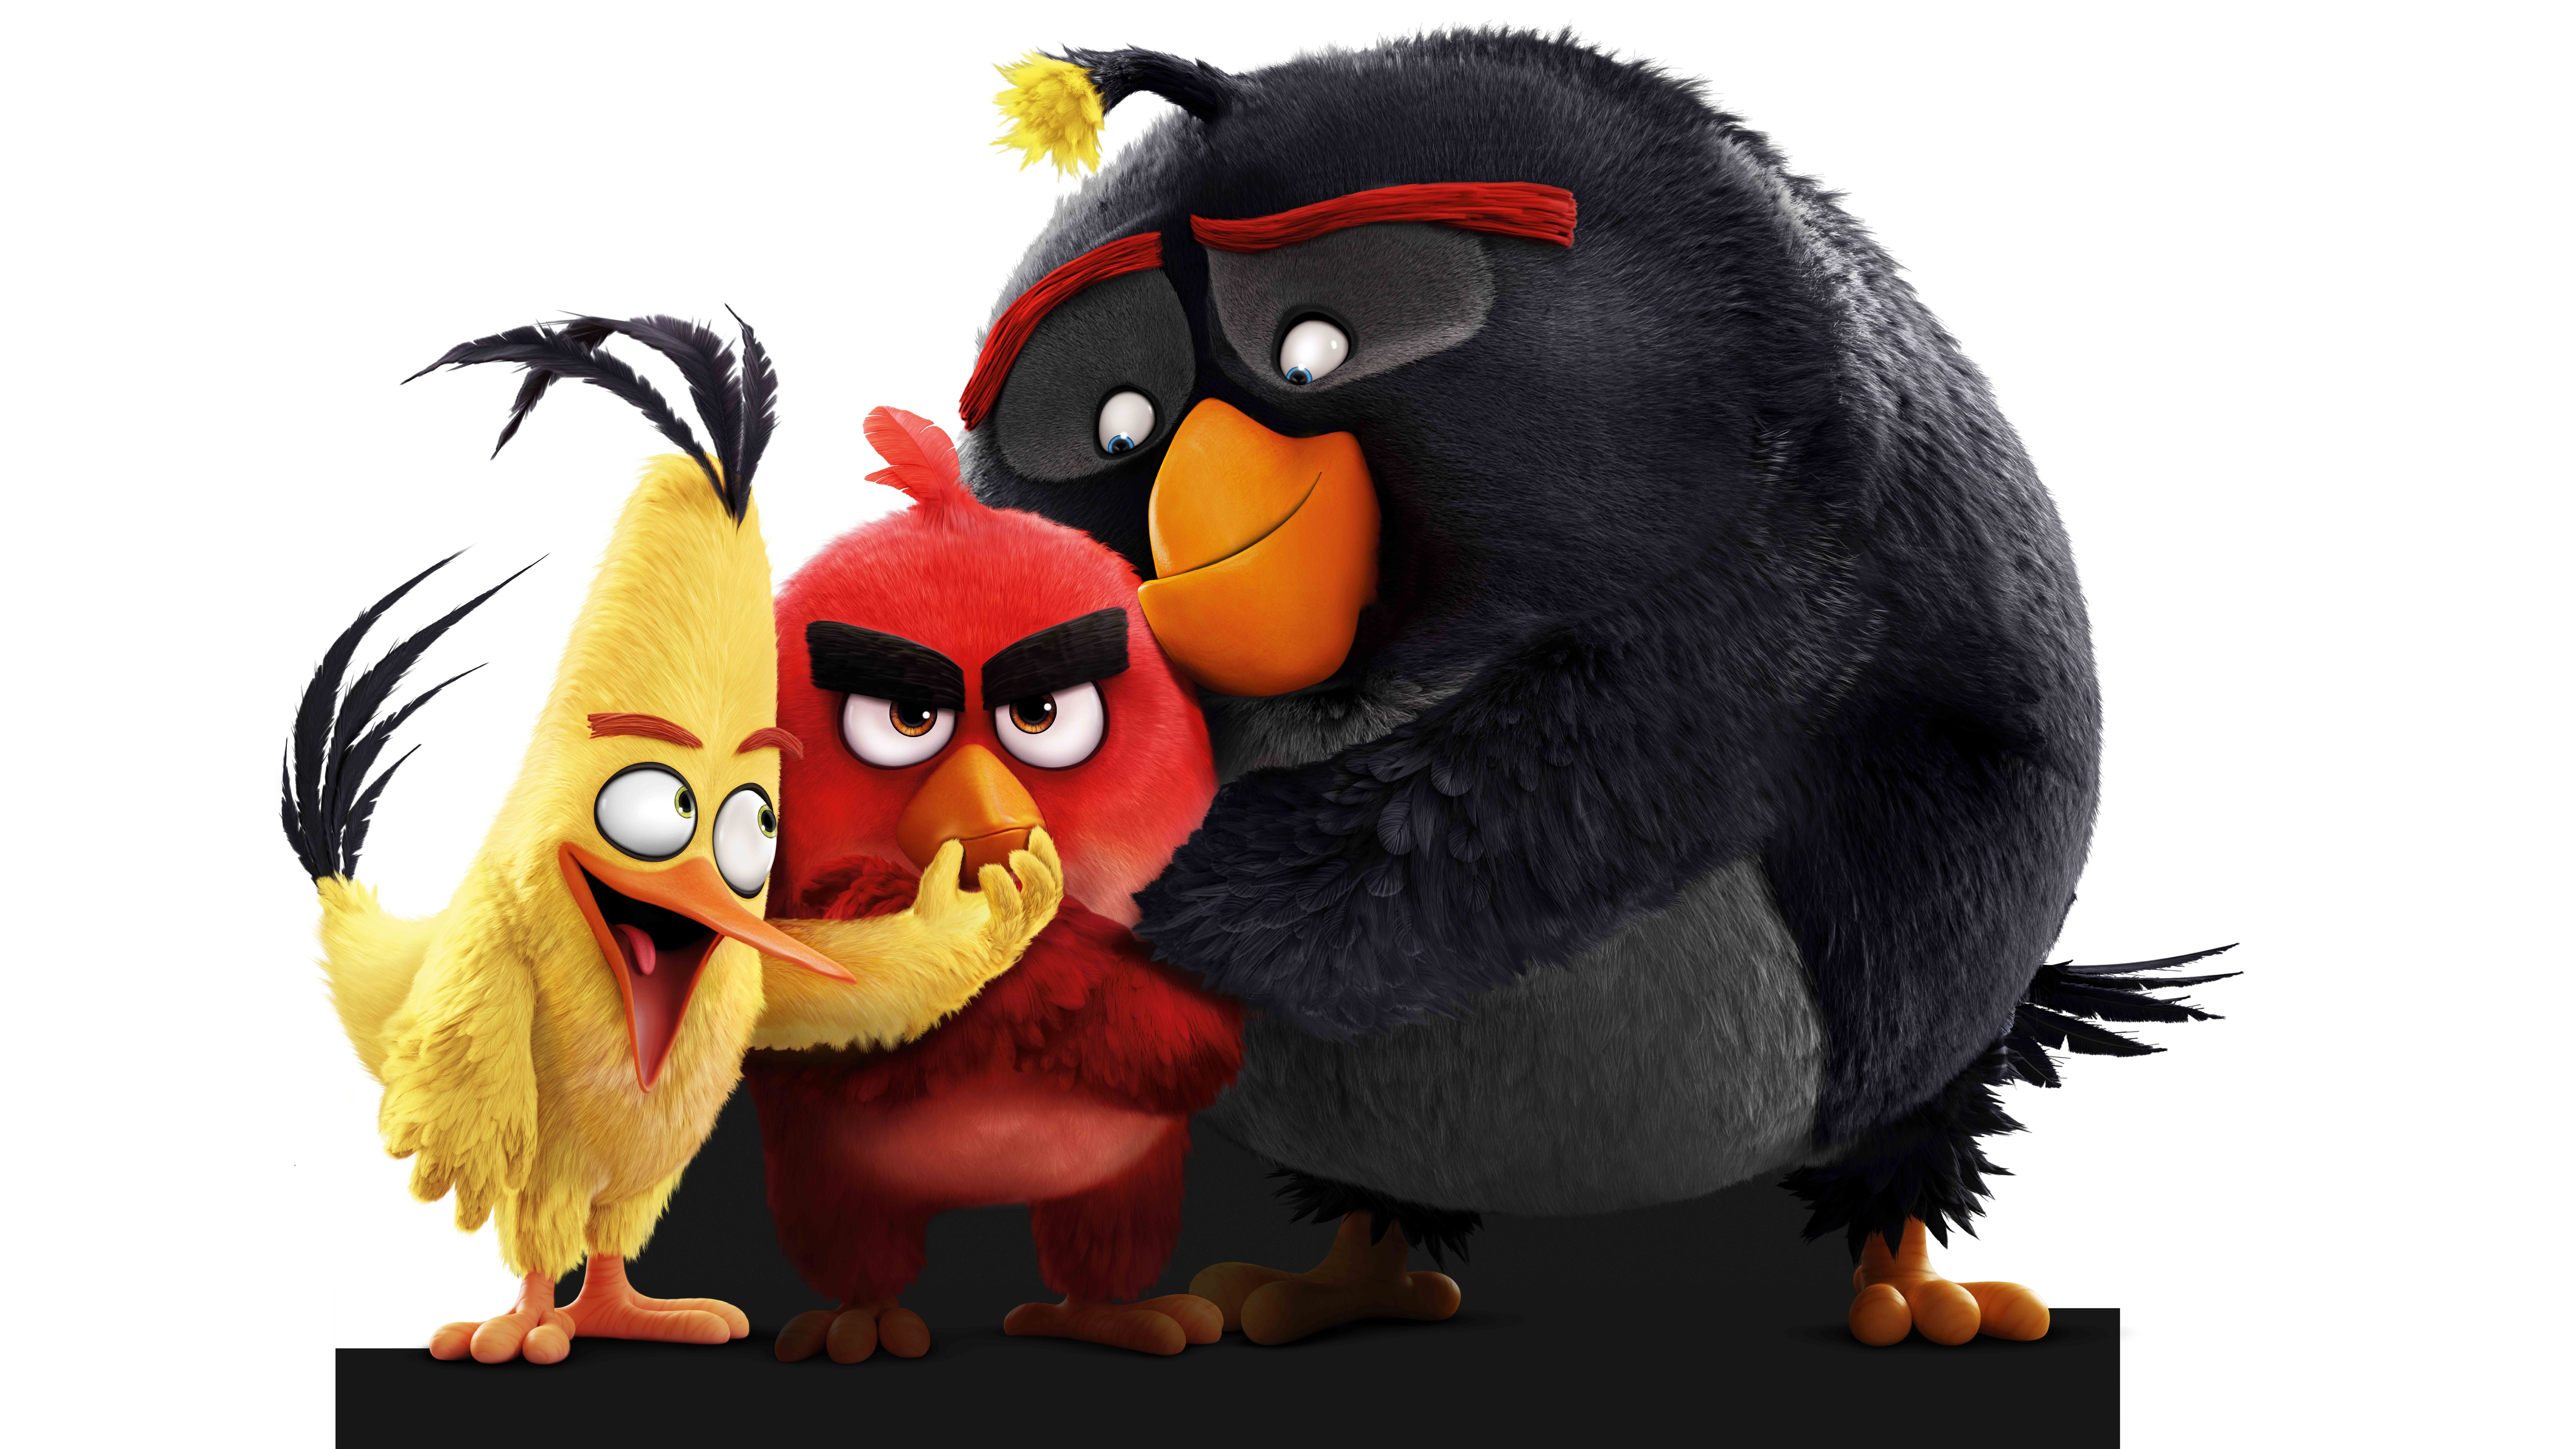 Angry birds animation movie wallpapers in jpg format for free download angry birds movie 2016 voltagebd Choice Image